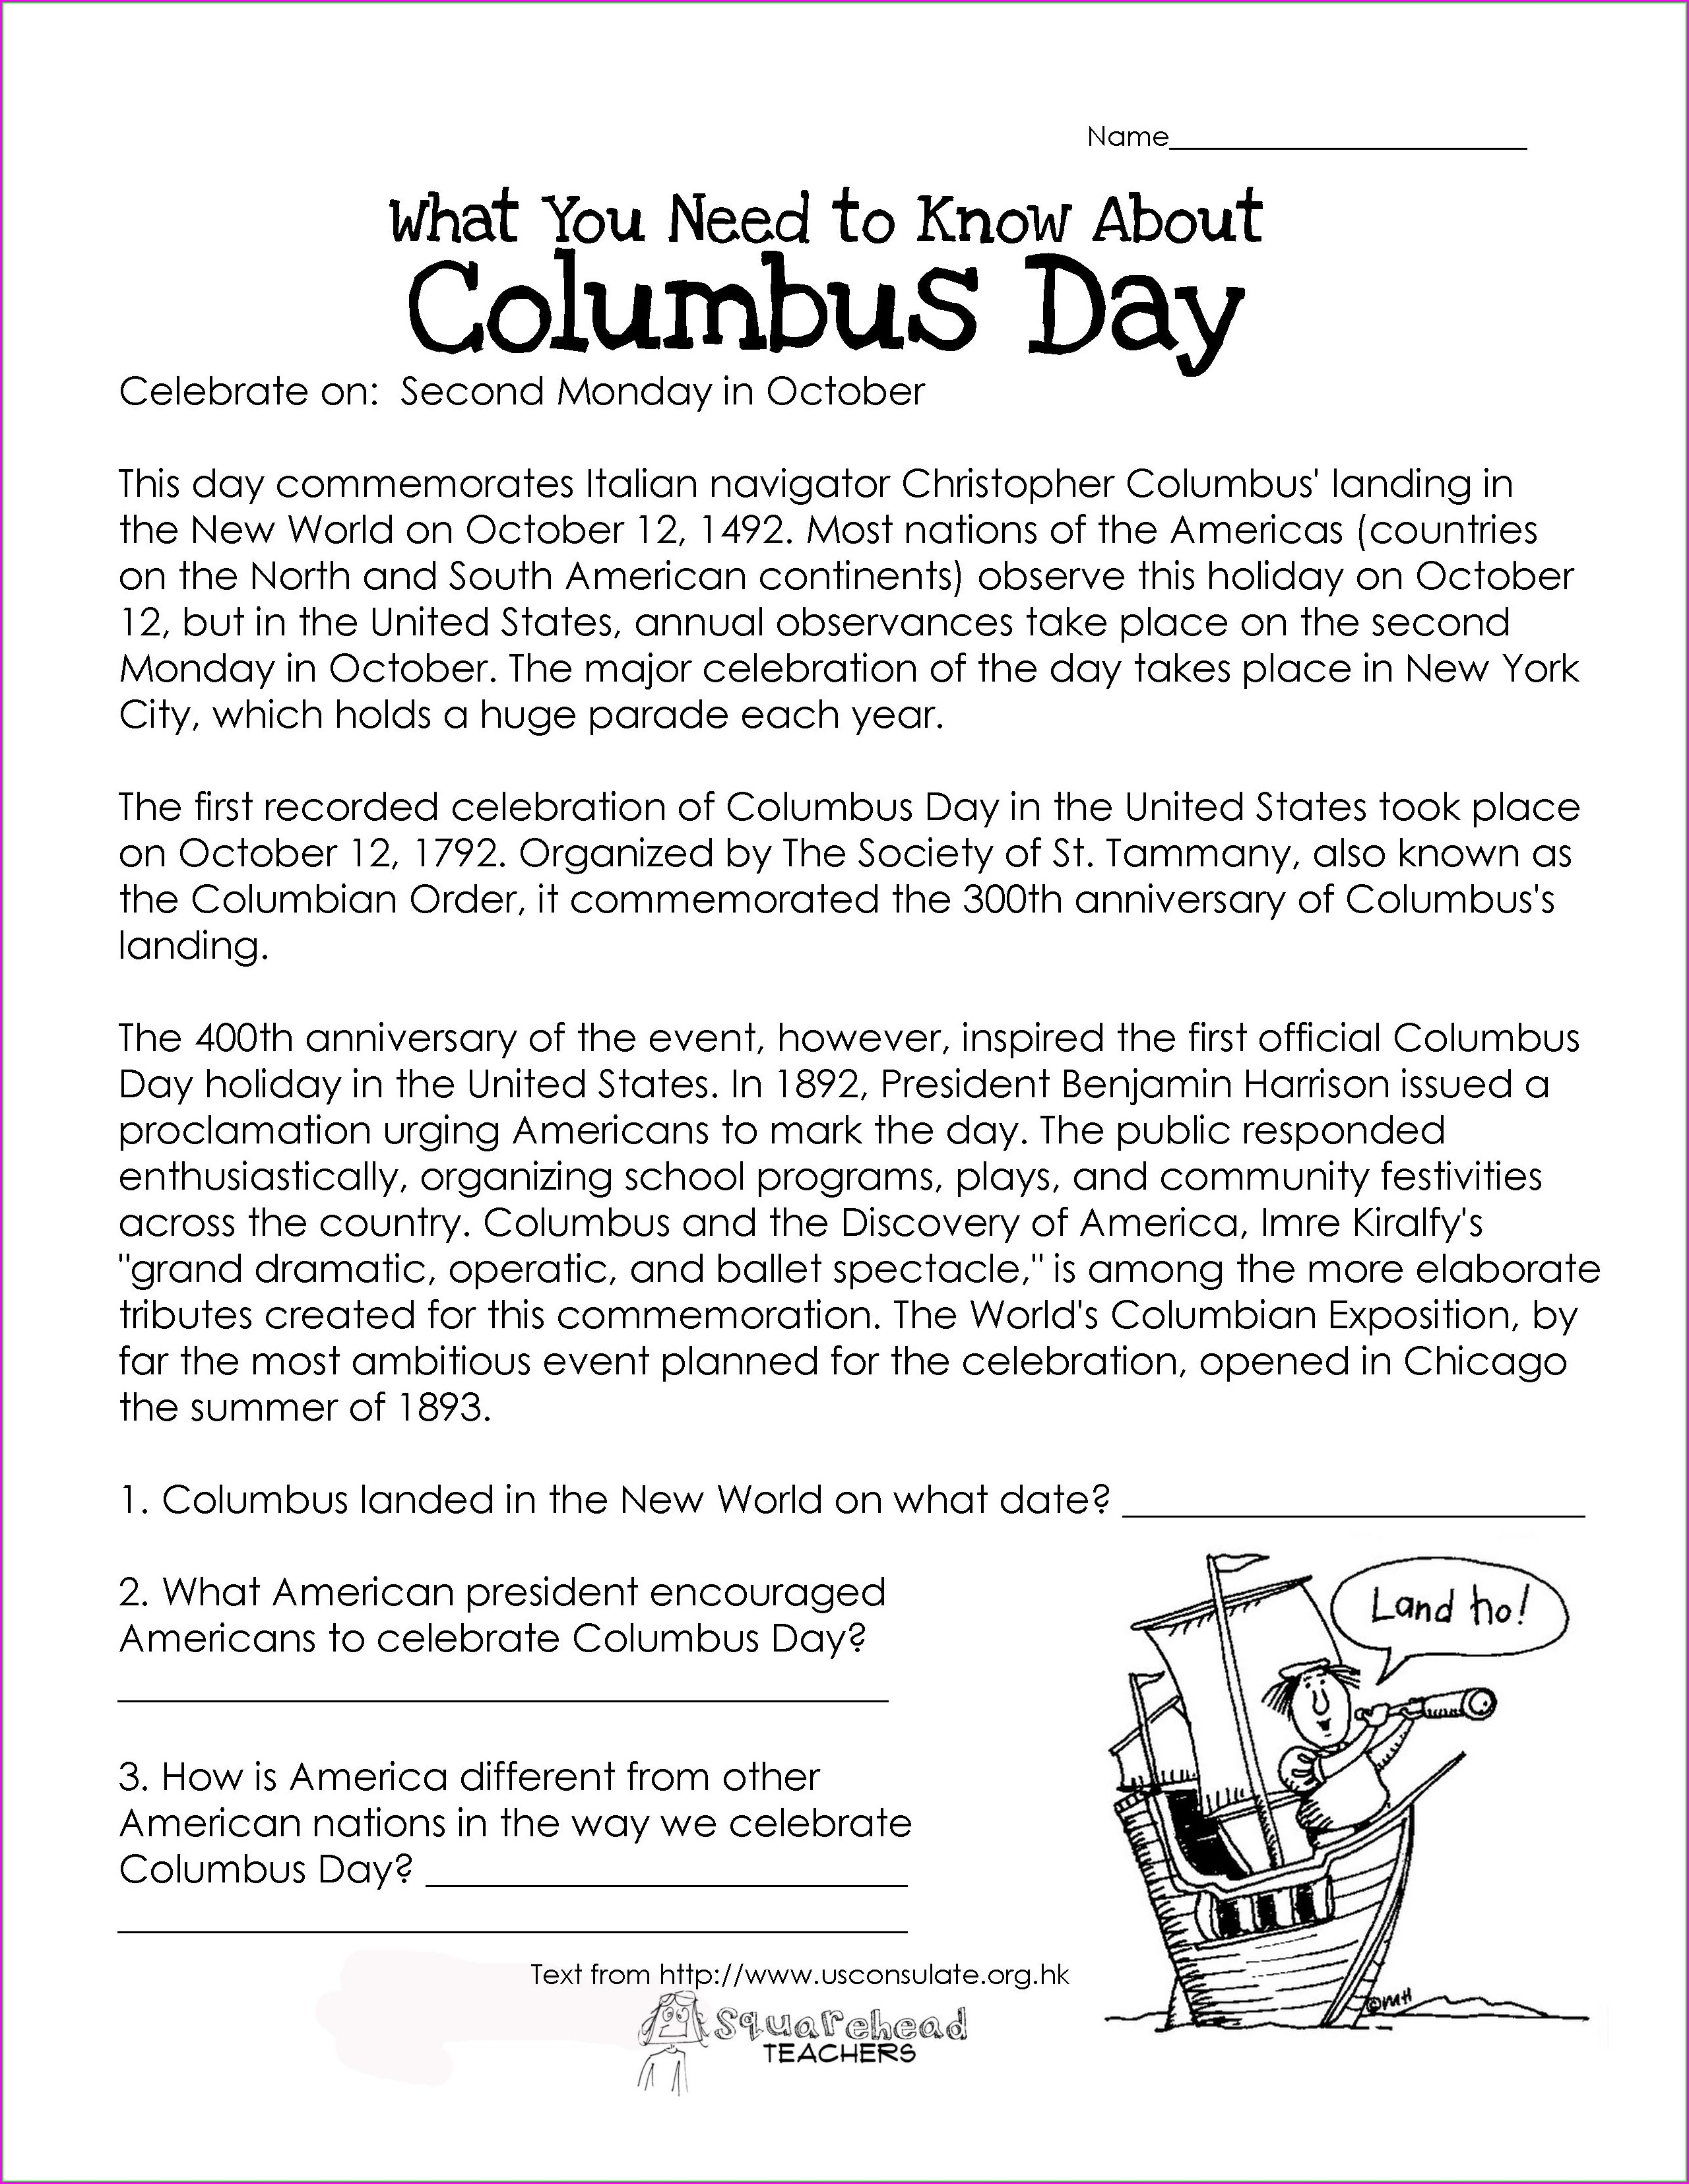 Reading Comprehension Worksheet On Christopher Columbus